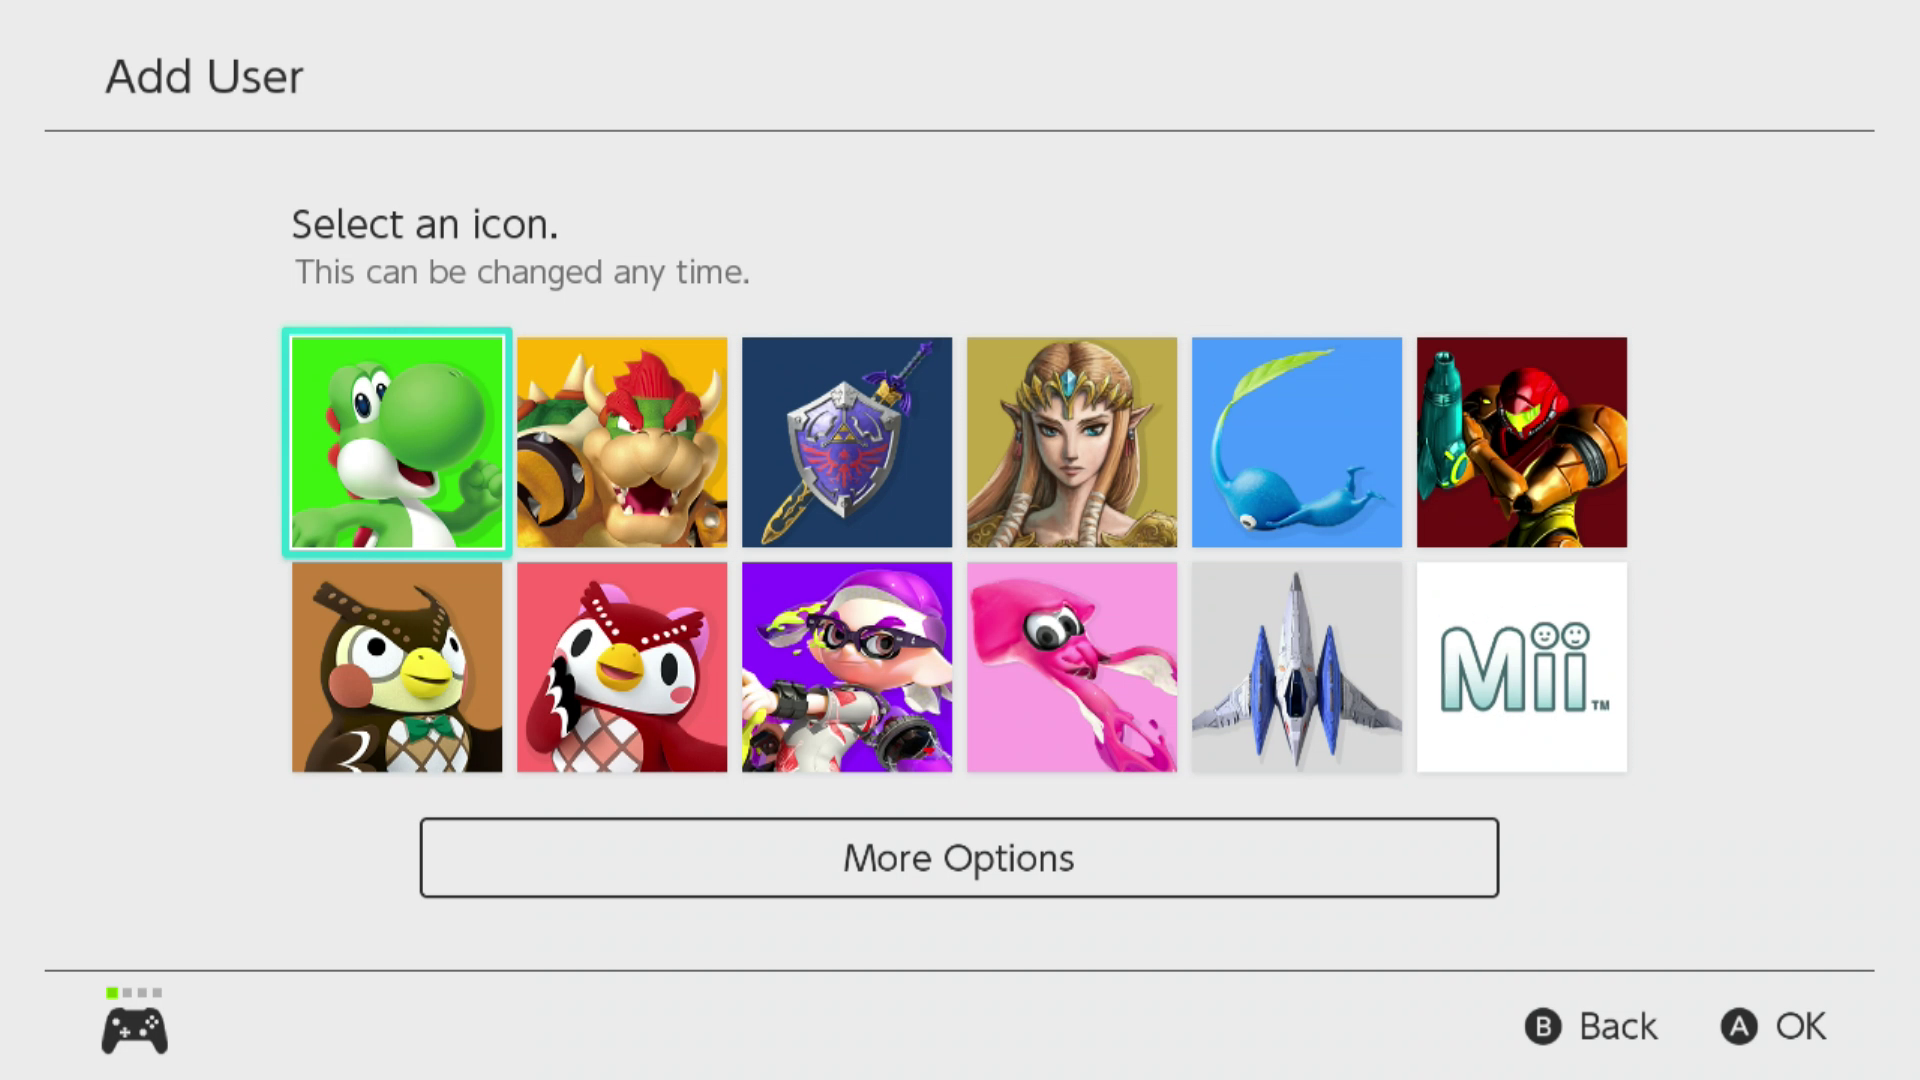 Selecting an icon on Nintendo Switch.